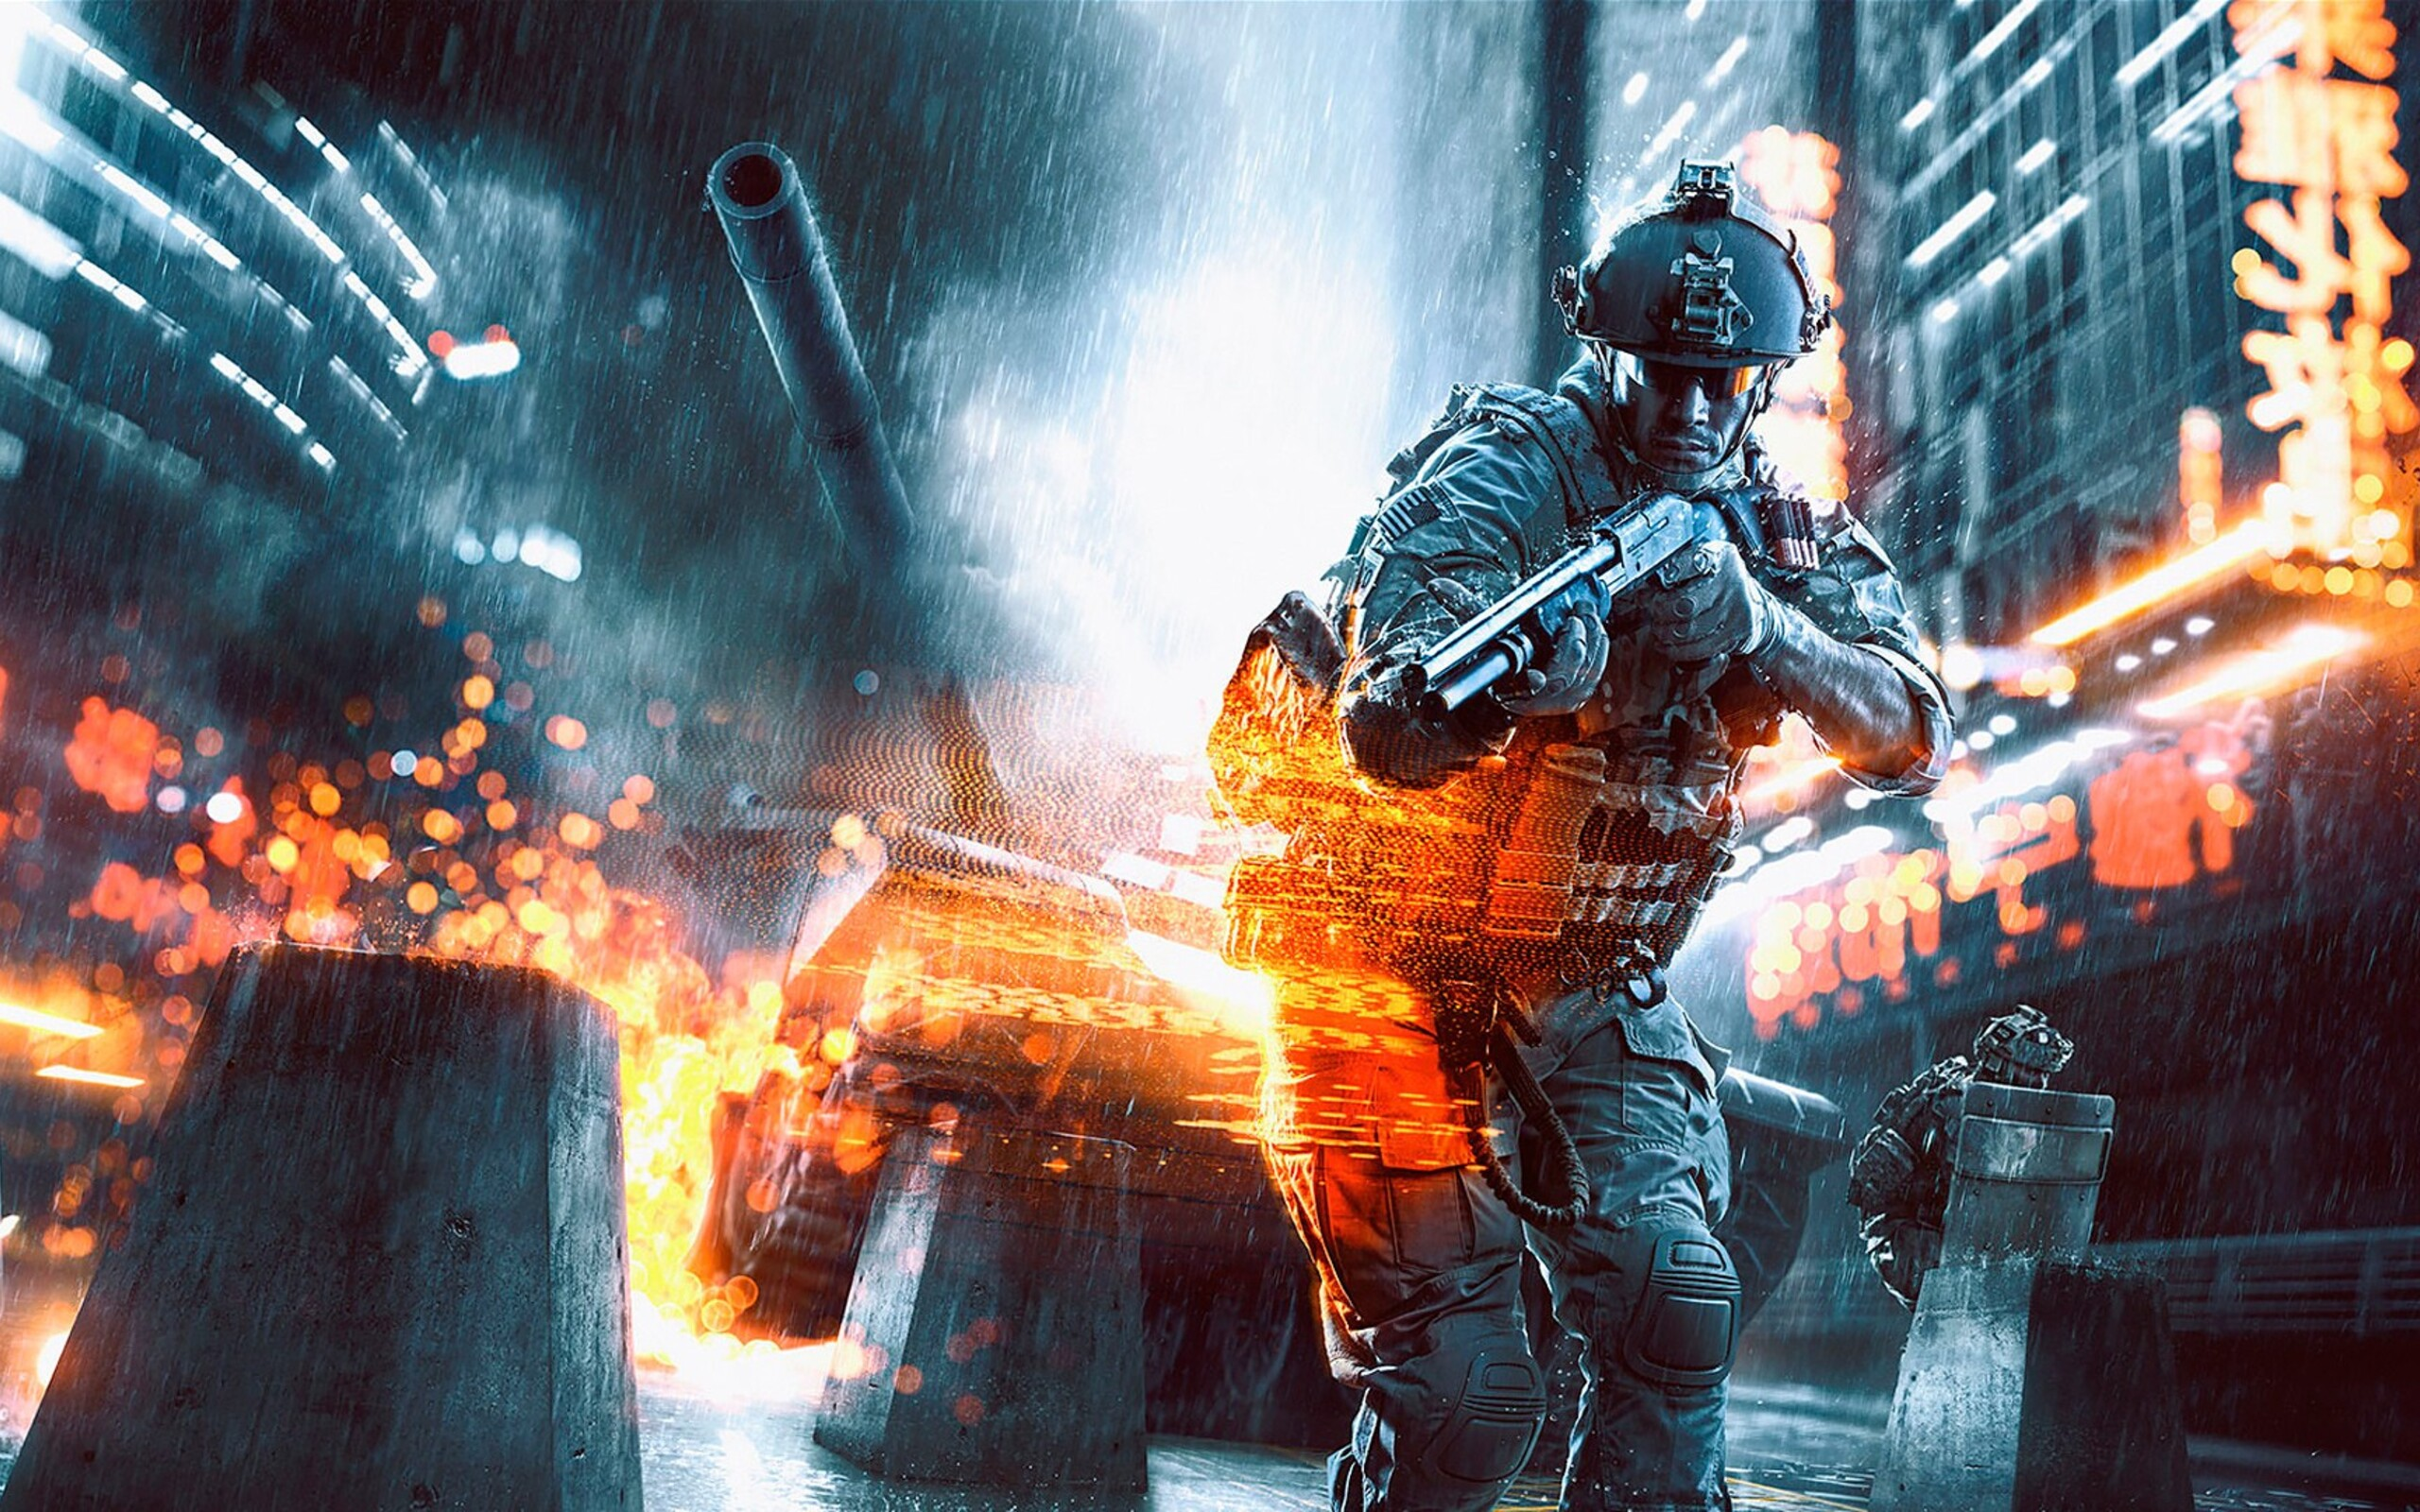 Download Wallpaper 1280x1280 Battlefield 4 Game Ea: 2560x1600 Battlefield 4 Game HD 2560x1600 Resolution HD 4k